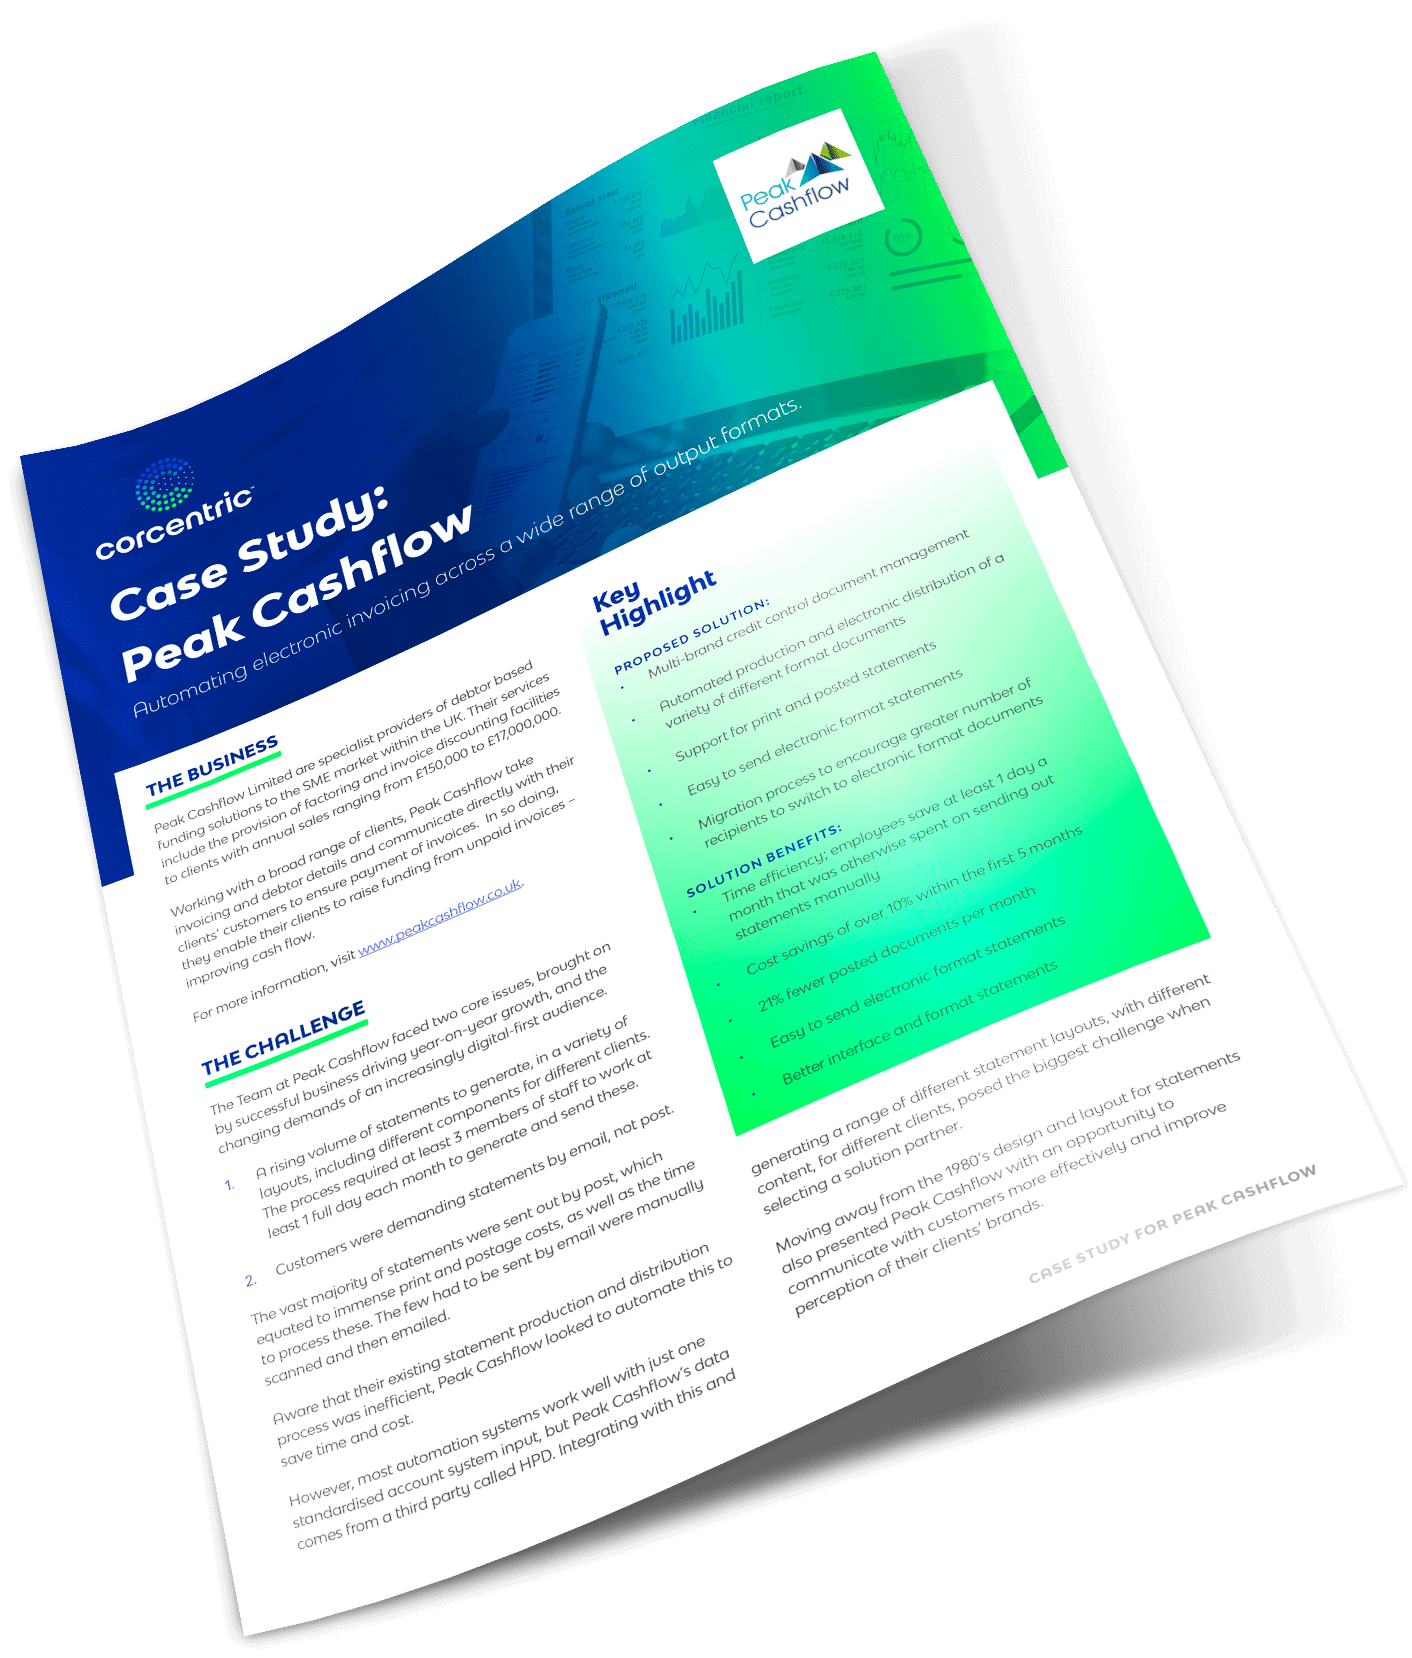 Corcentric Case Study: Peak Cashflow - Authorizing Electronic Invoicing Across a Wide Range of Output Formats